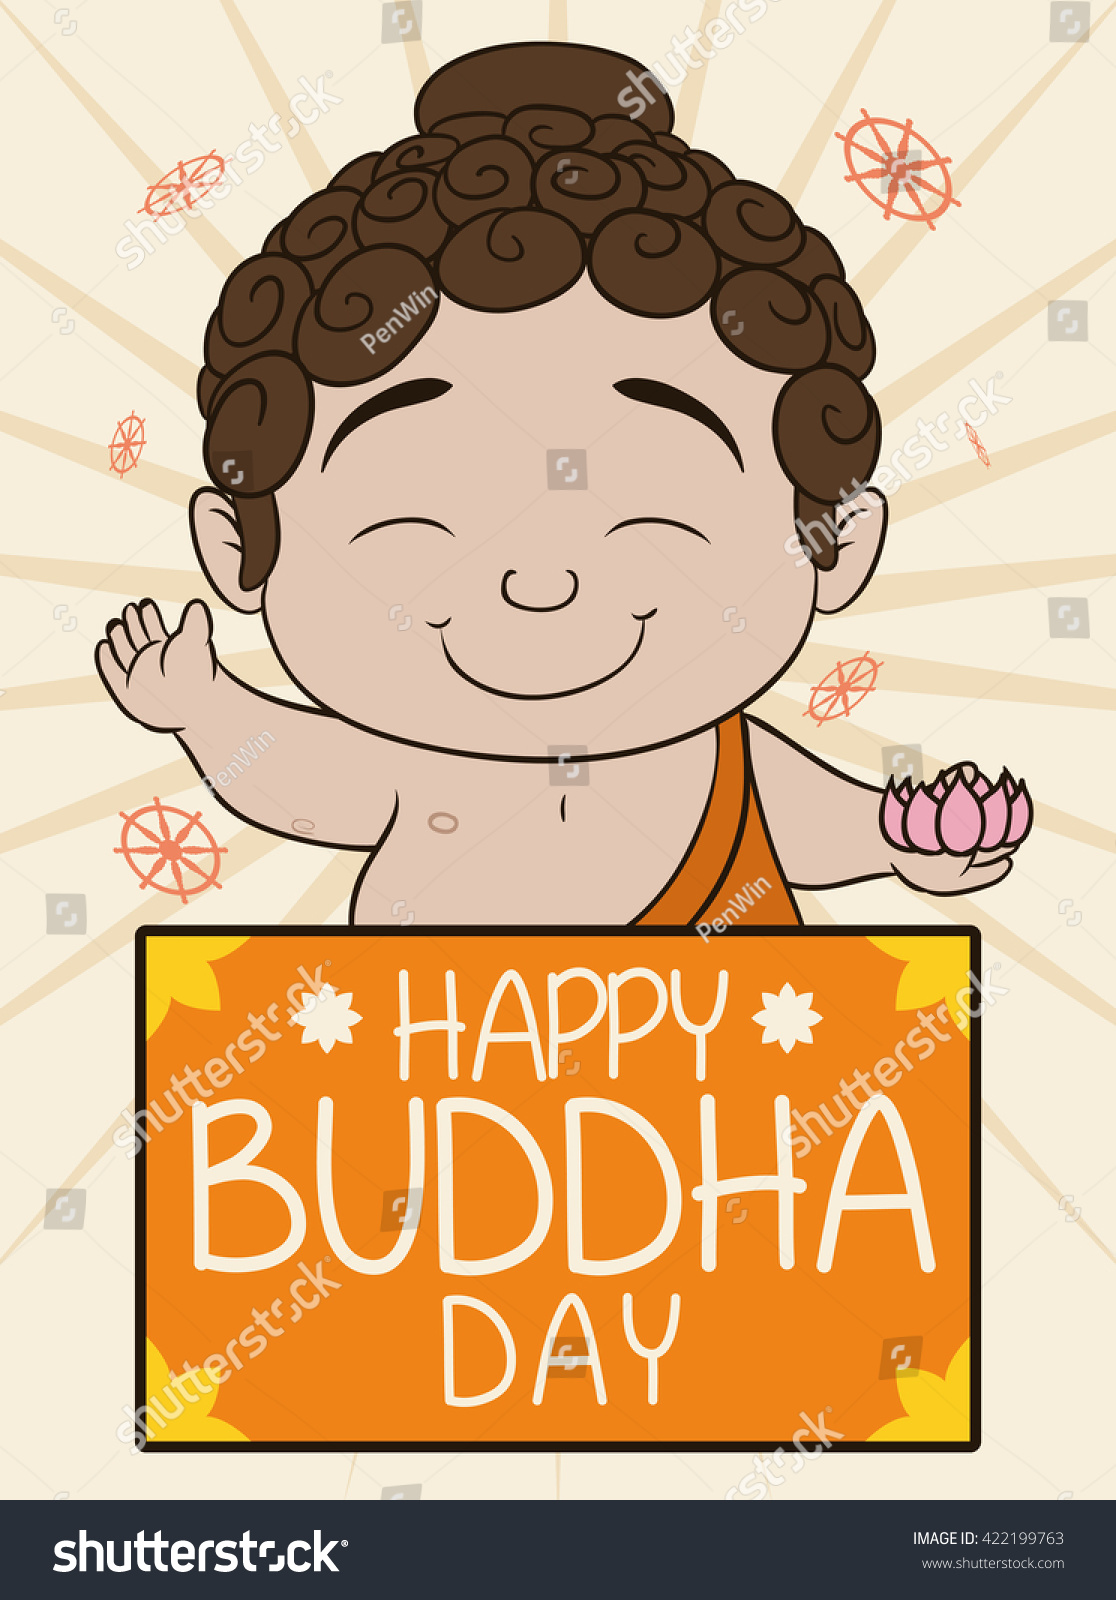 Pretty baby buddha lotus his hand stock vector 422199763 shutterstock pretty baby buddha with a lotus in his hand and greeting message commemorating vesak celebration kristyandbryce Images